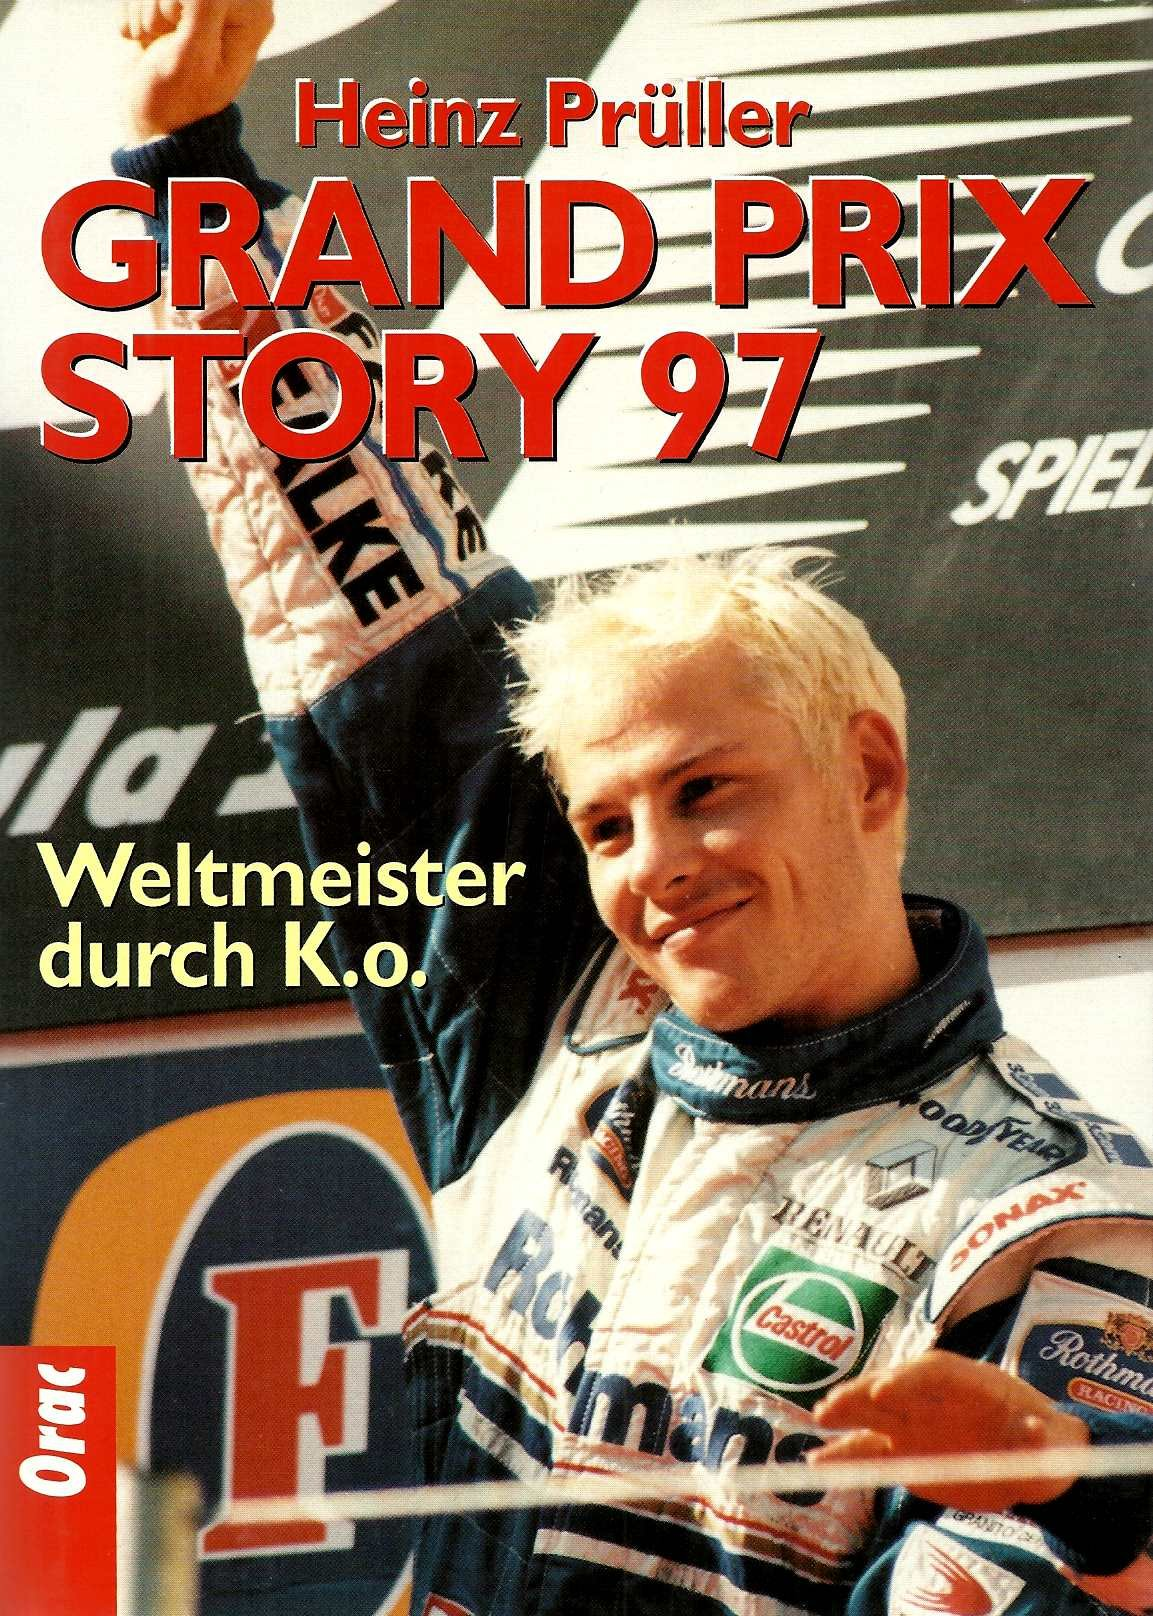 Grand Prix Story 97. Weltmeister dur K.o.